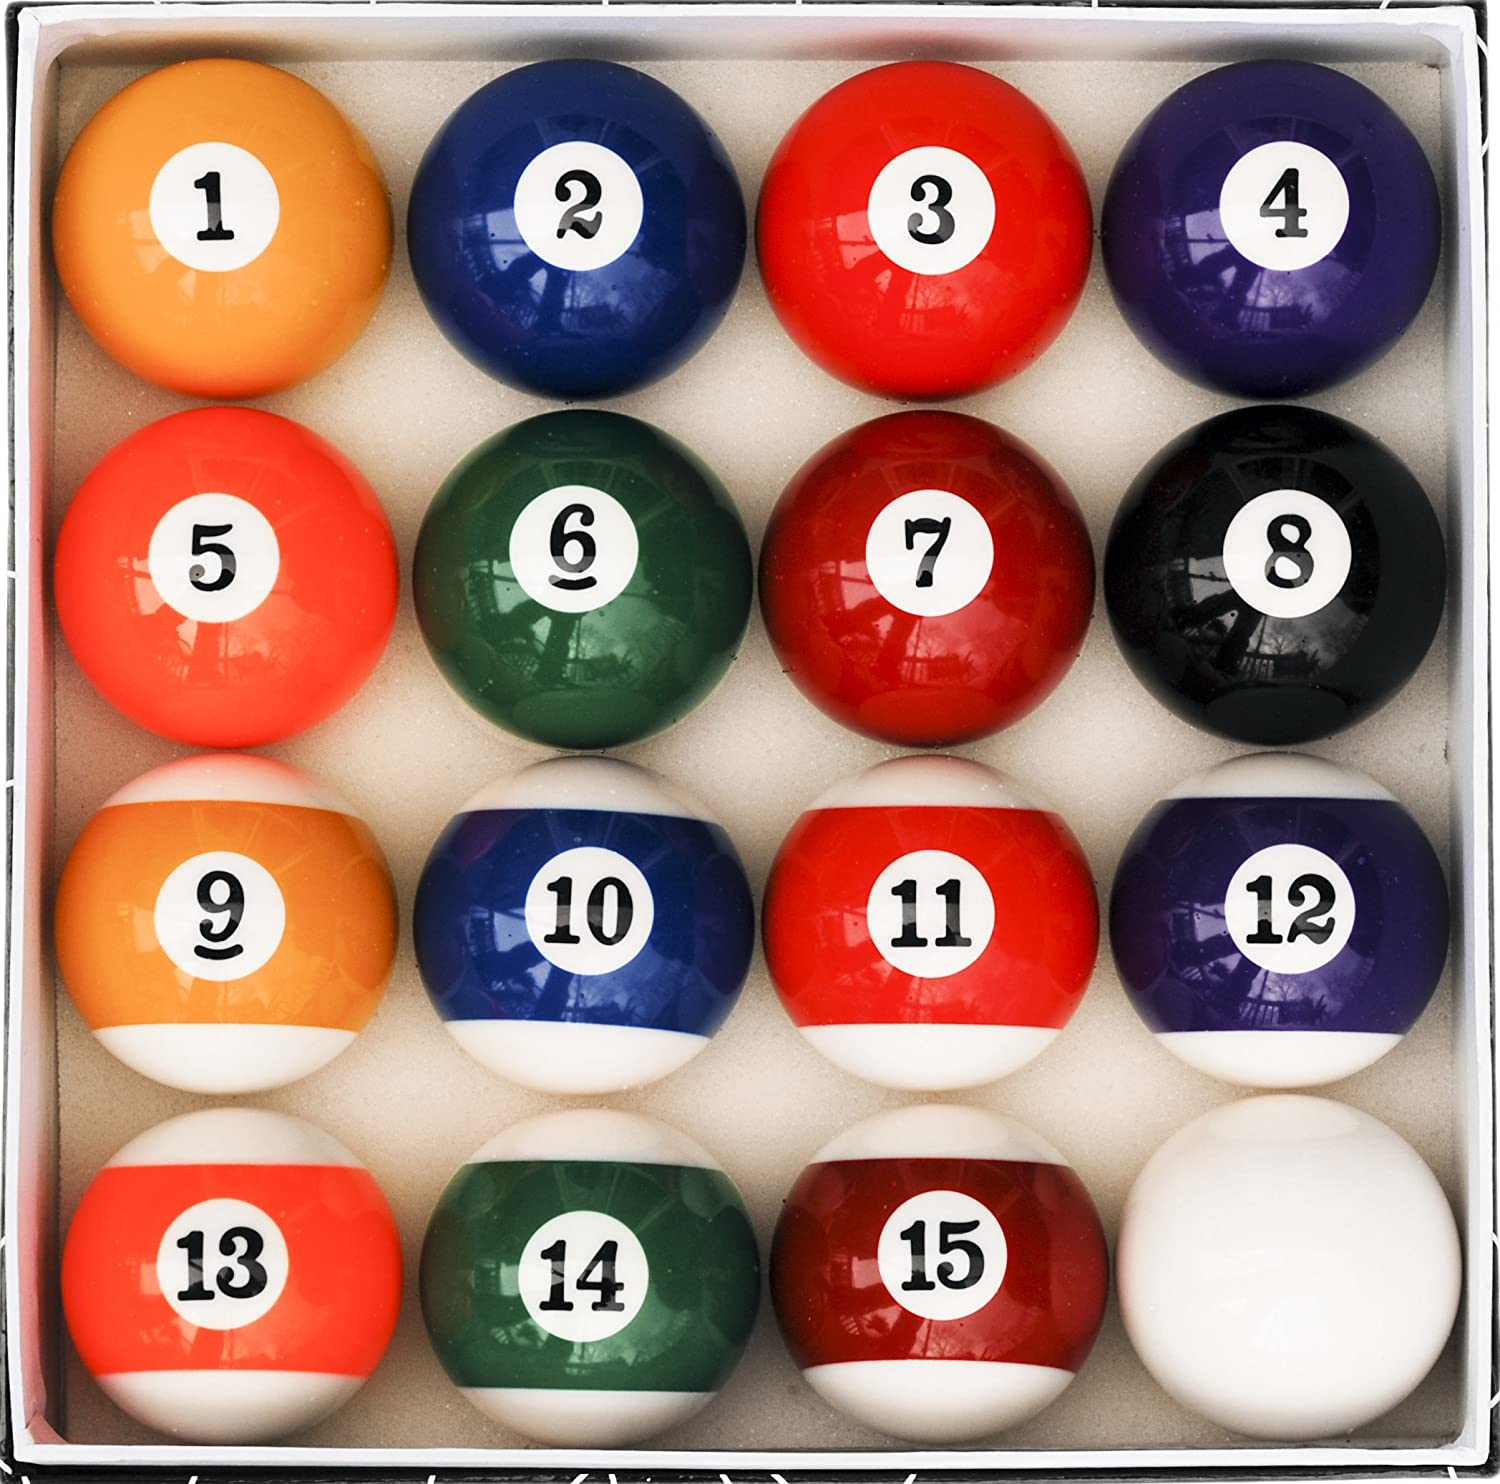 Pool Billiards Balls Amazoncom Cue Balls Billiards Balls - Ballard pool table